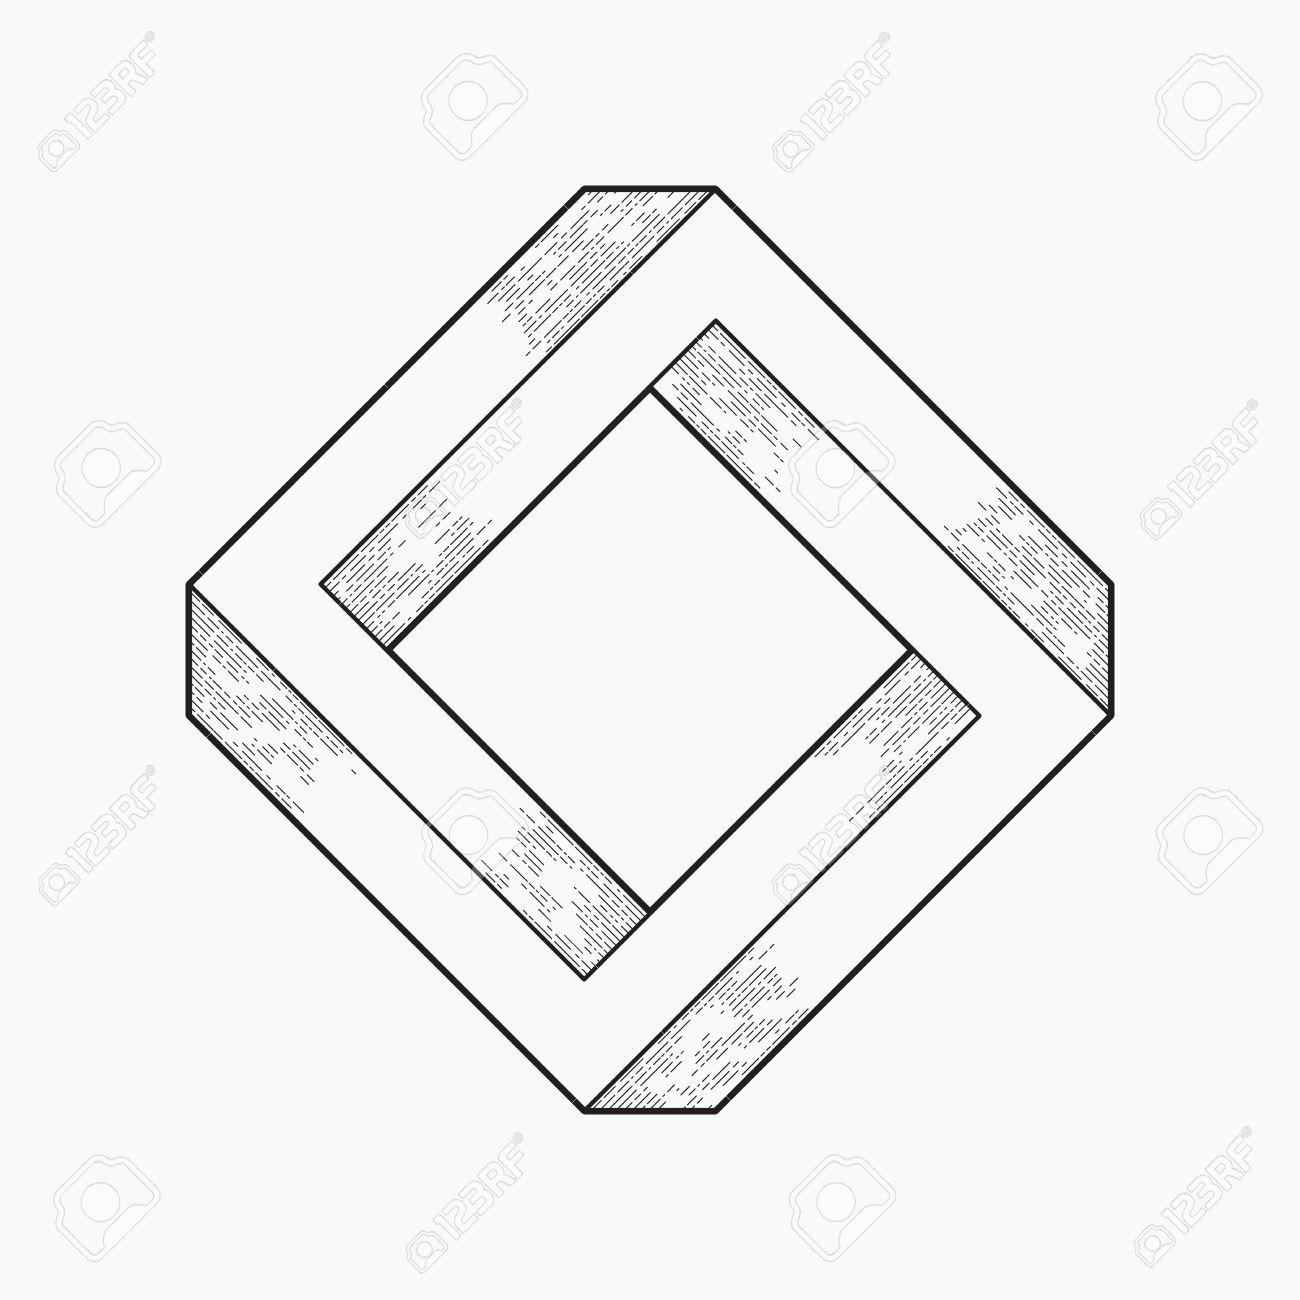 1300x1300 Impossible Shape, Square, Line Design Royalty Free Cliparts